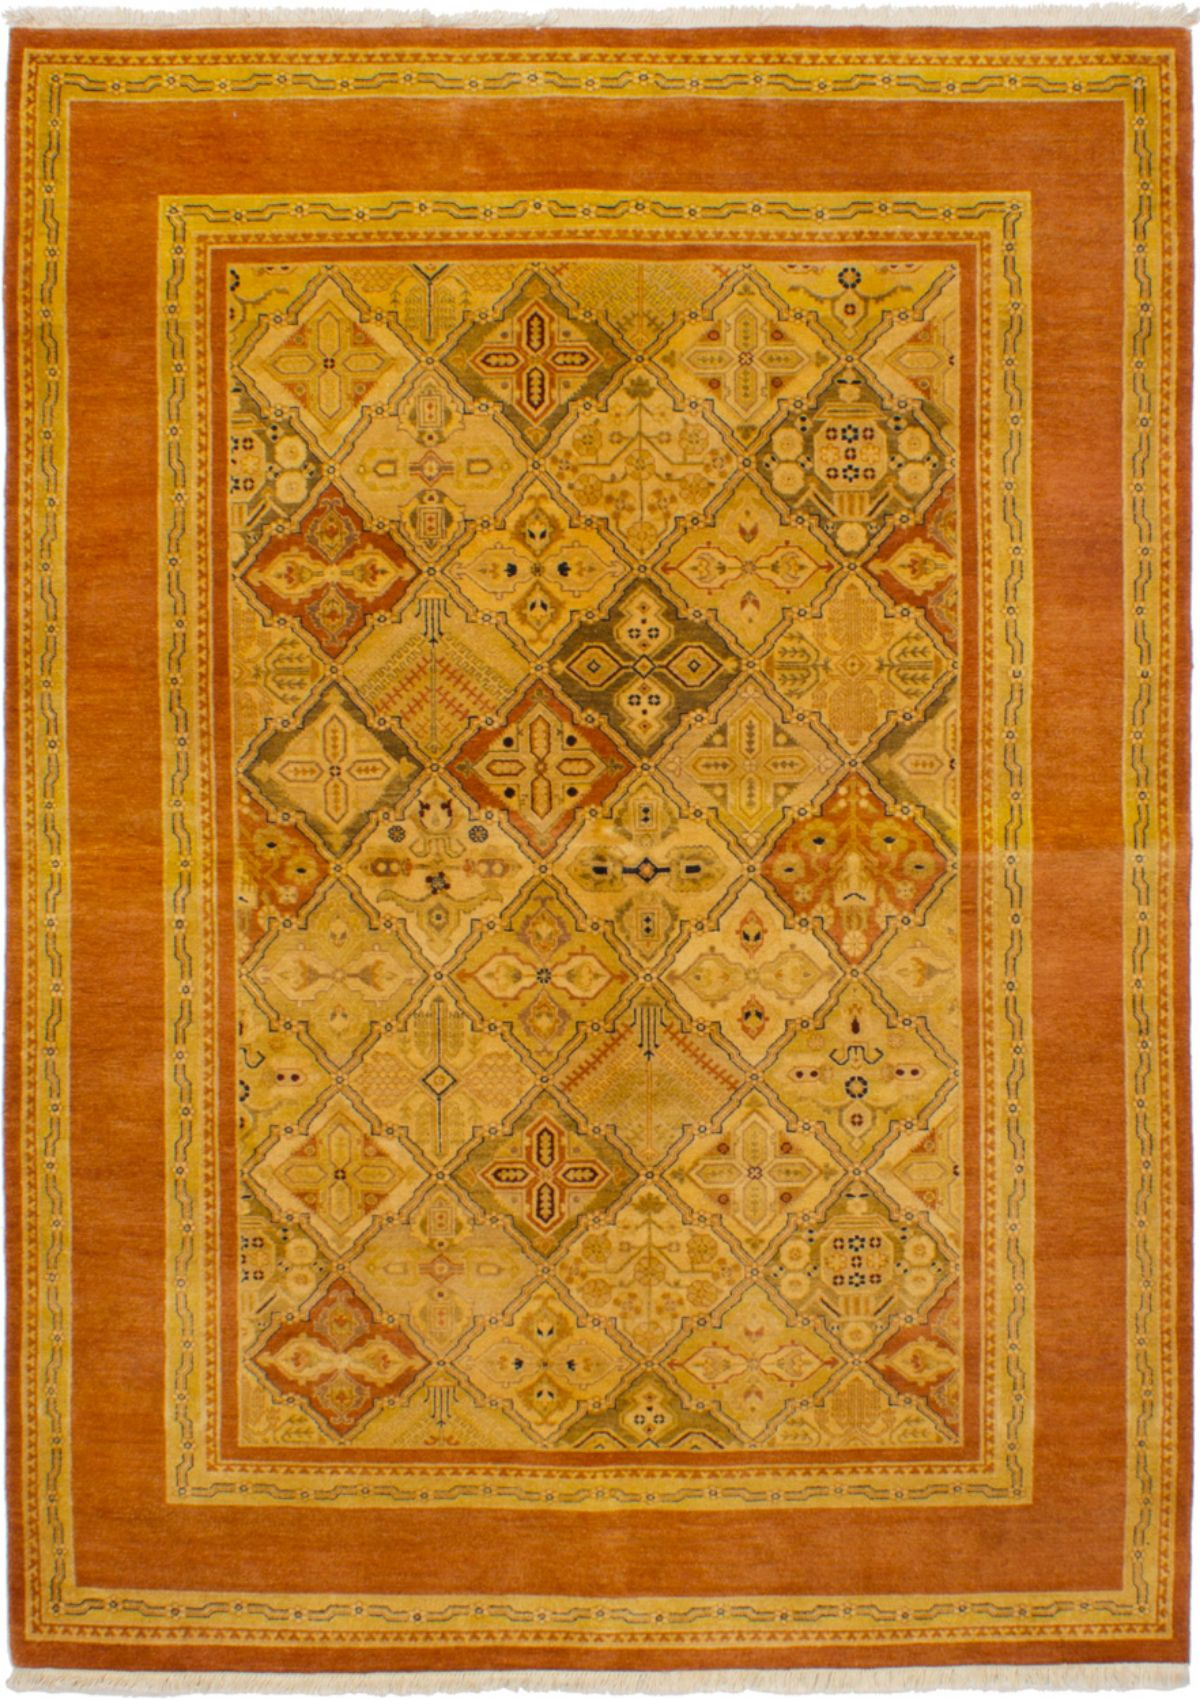 Hand-knotted Peshawar Finest Dark Copper, Light Khaki Wool Rug 6'0in x 8'10in at RugsBySize.com